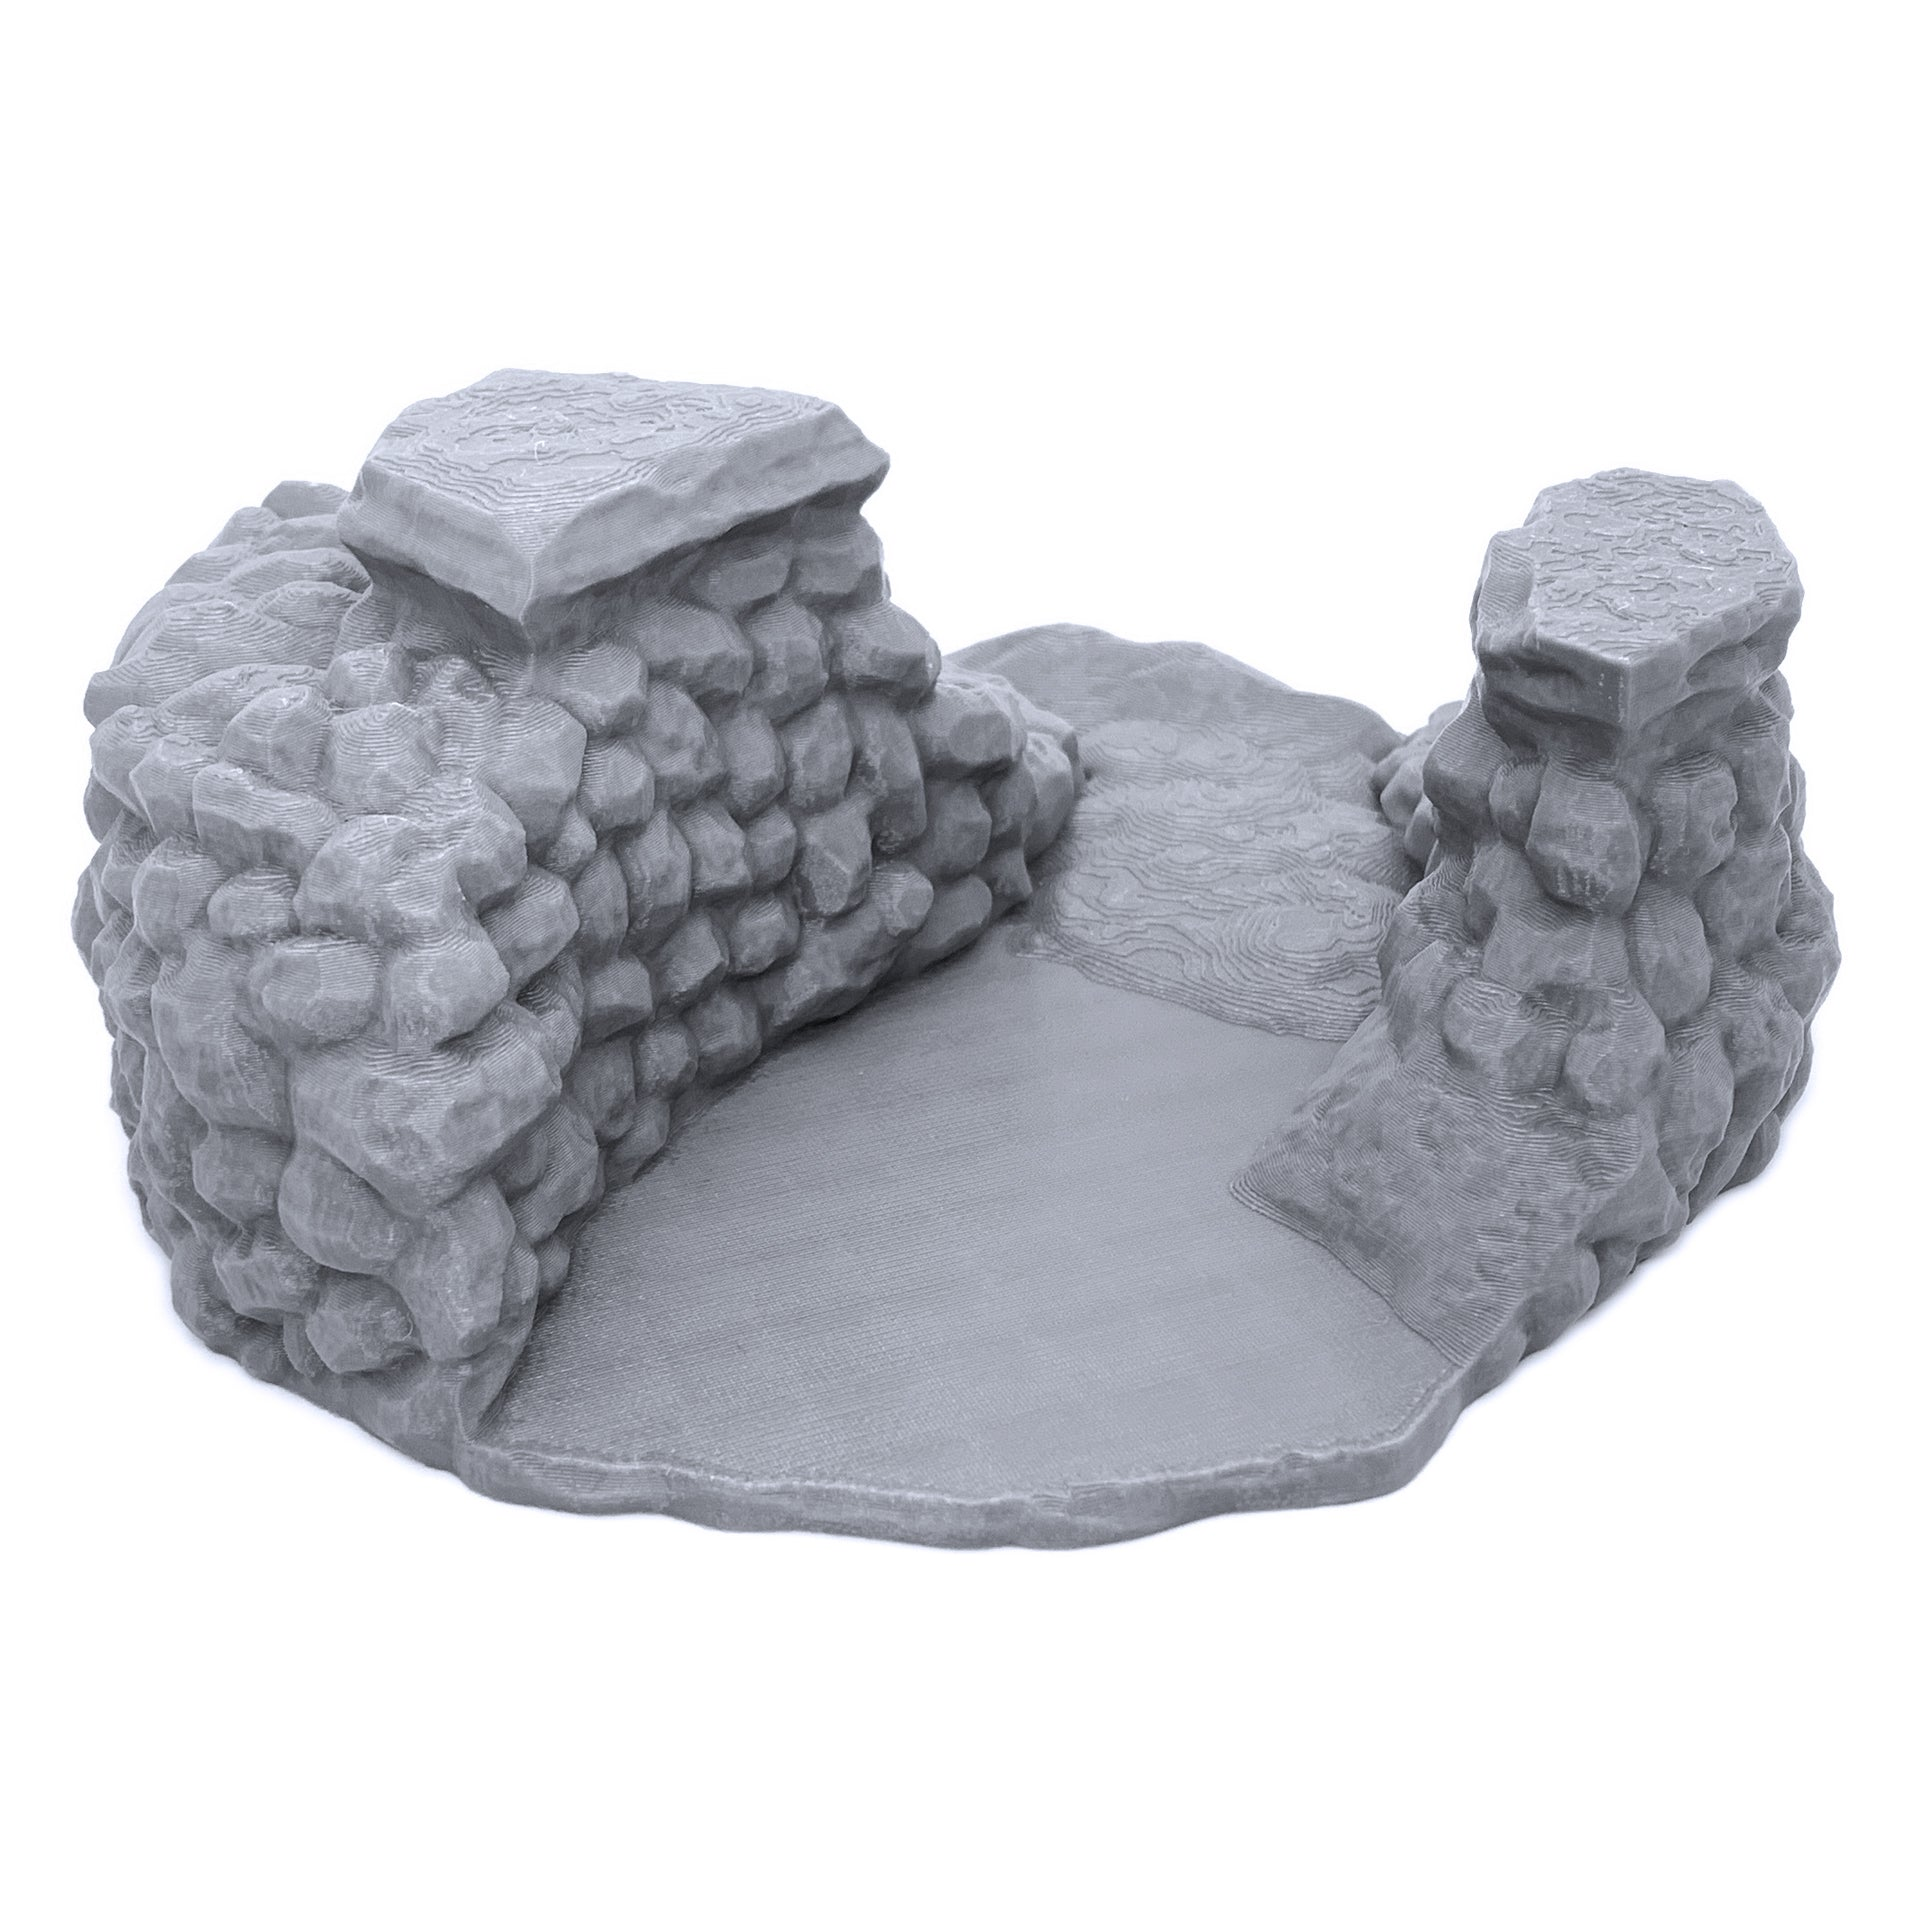 Rock Valley - EnderToys Terrain